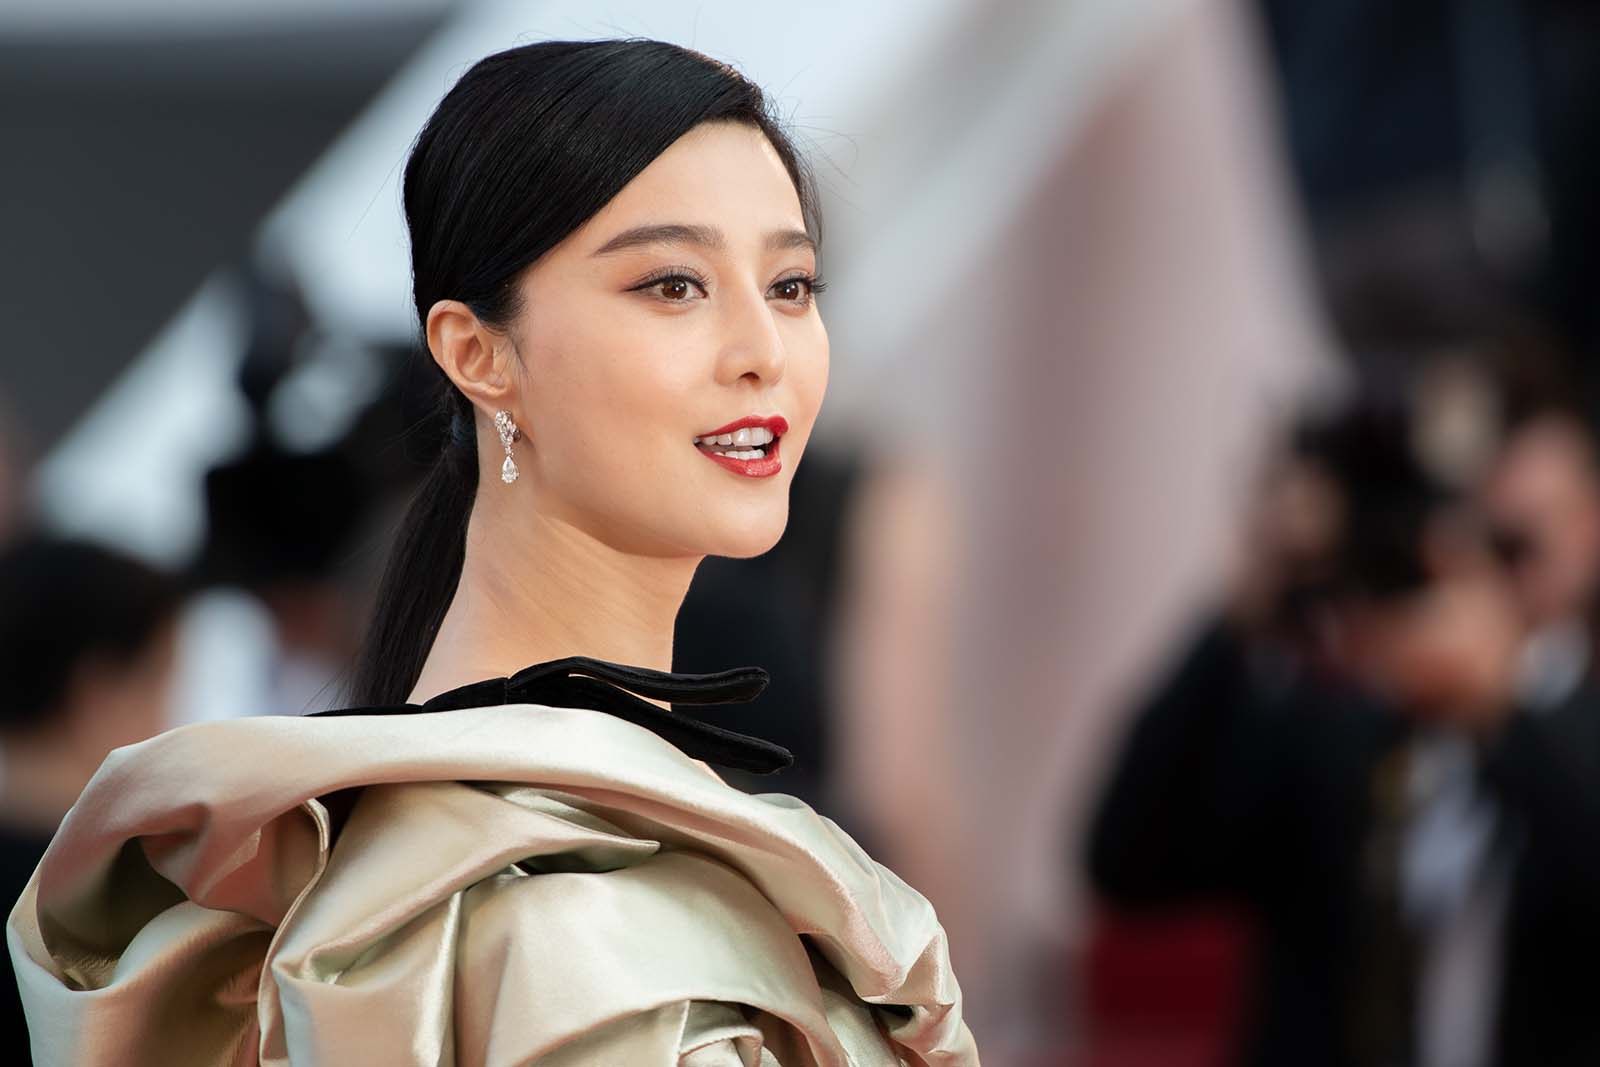 Fan Bingbing is returning to the small screen after a two year hiatus. Read more about the project that is finally getting a release.